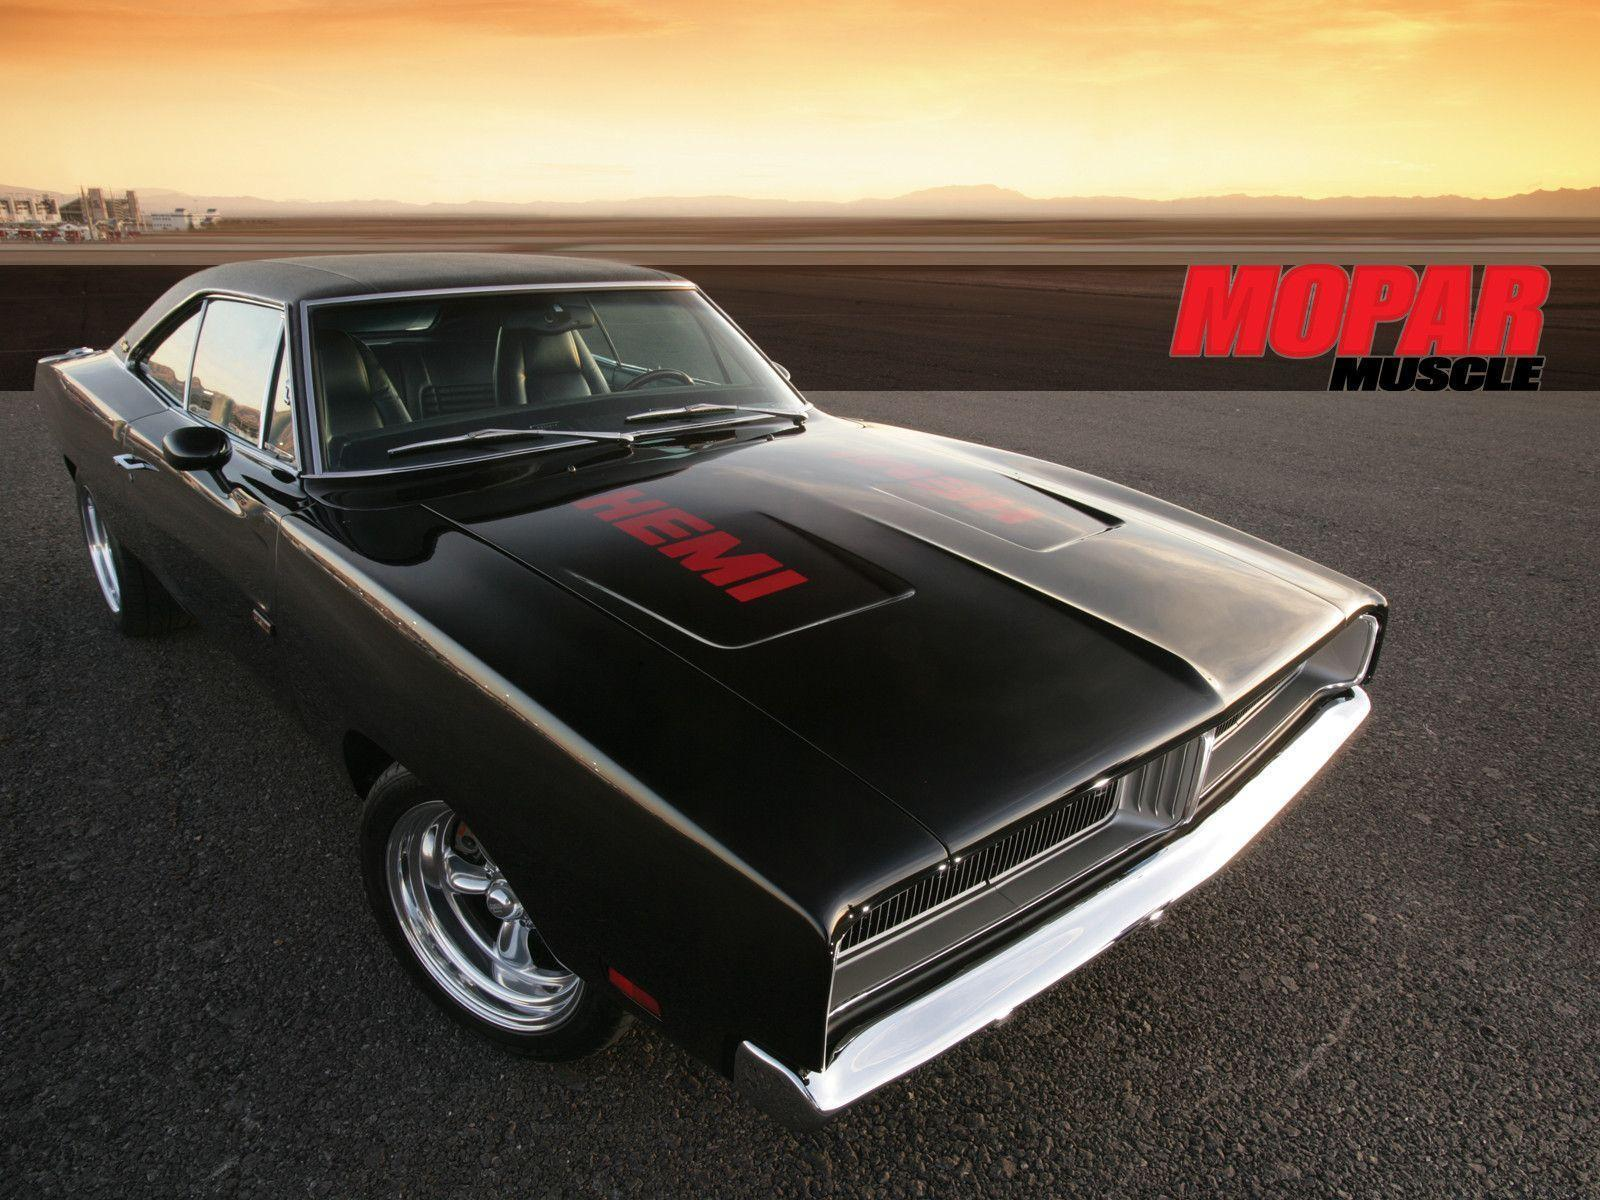 1969 Dodge Charger Concept lead - Cars News, Price and ...